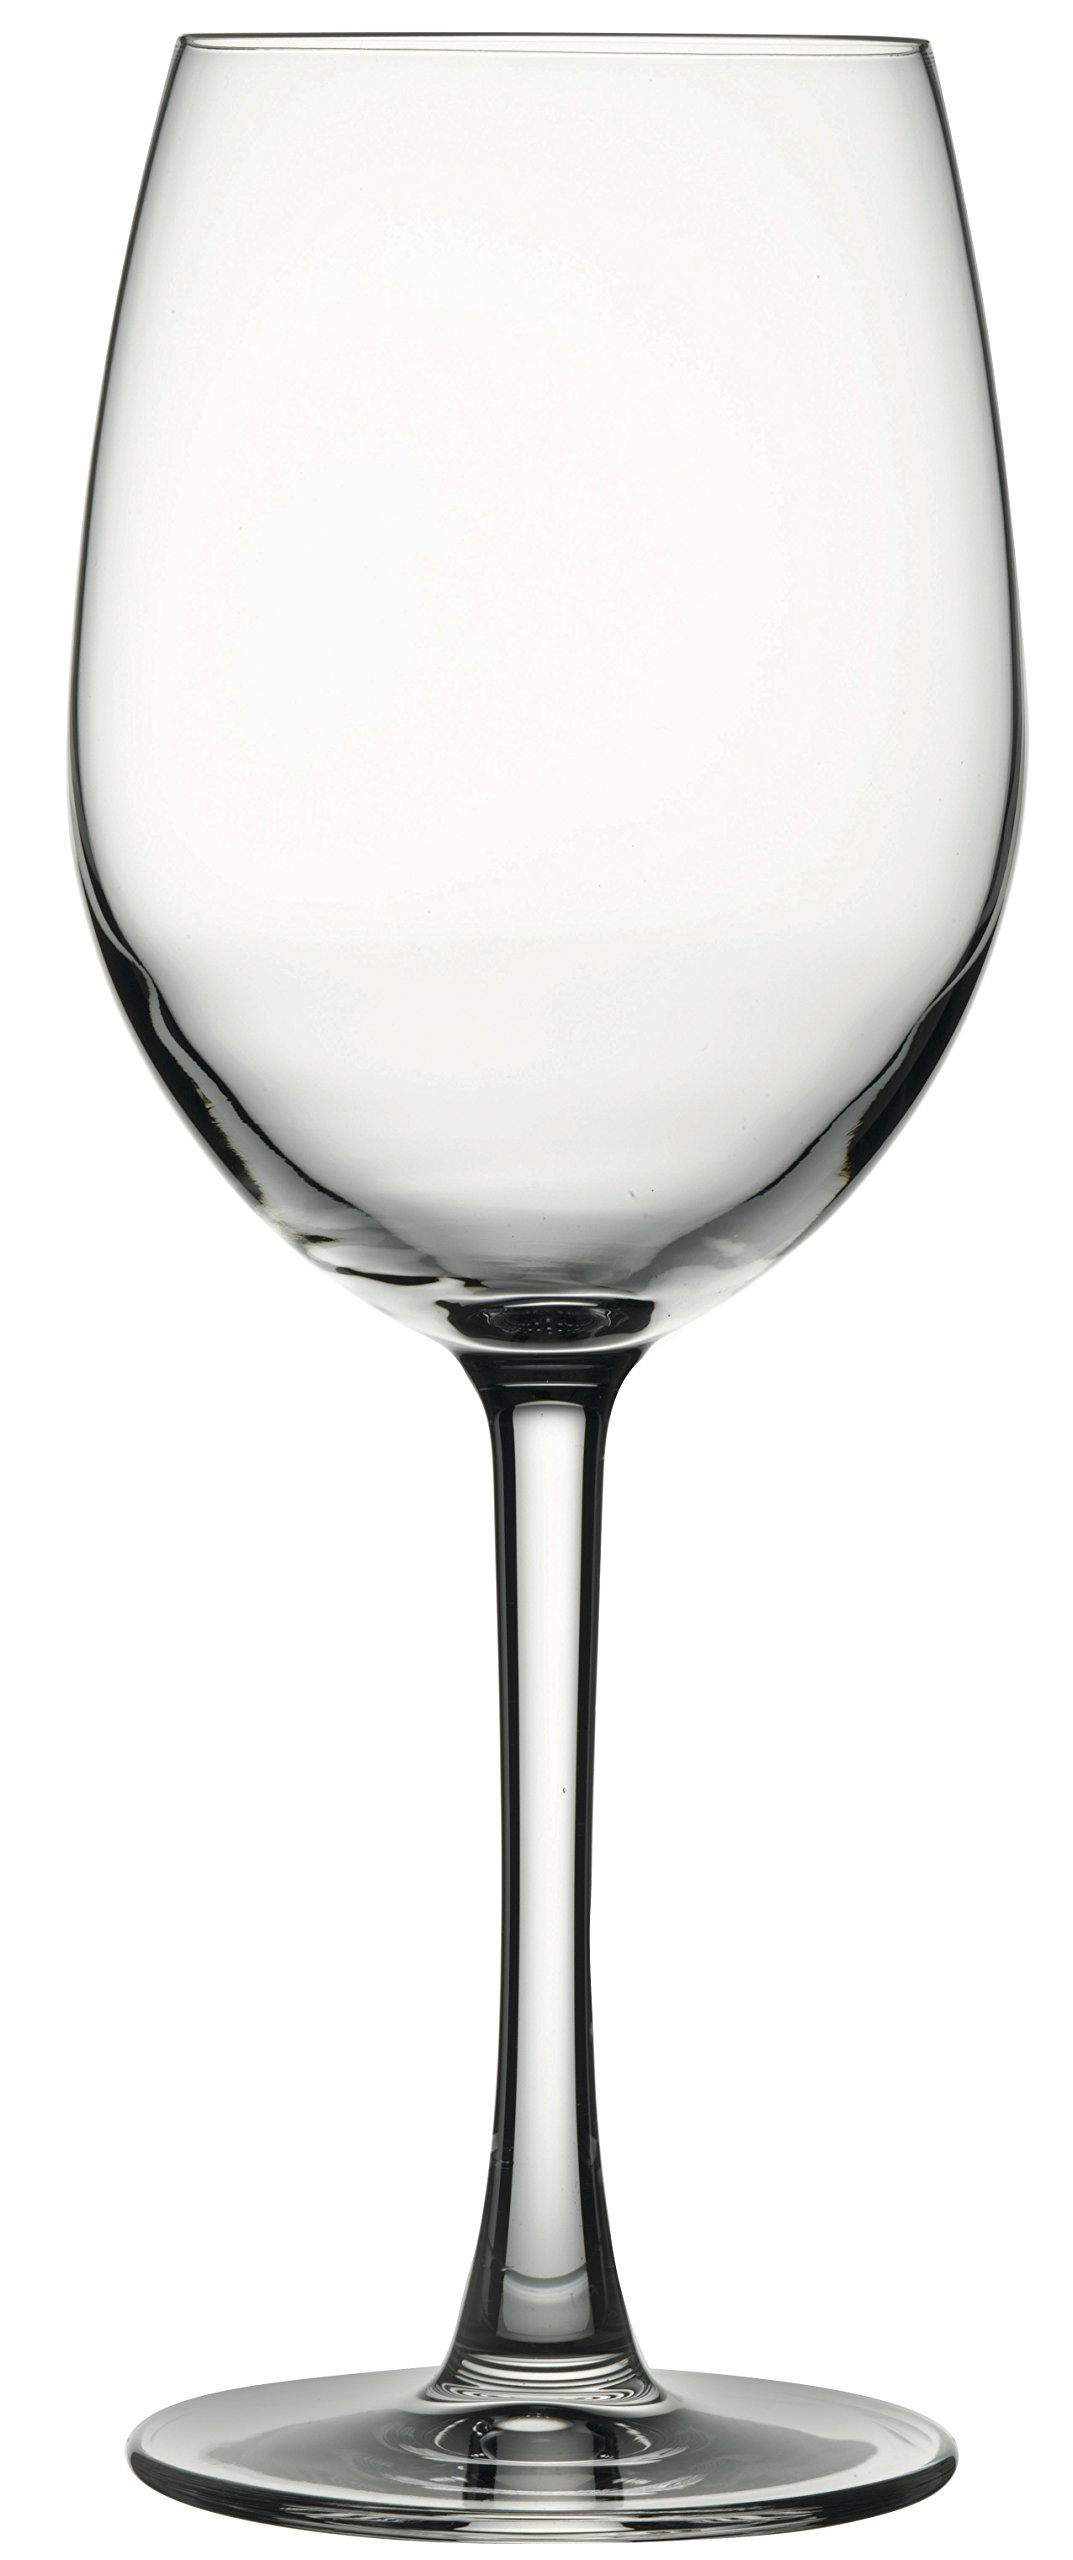 Hospitality Glass Brands 67078-024 Reserva 16 oz. Tall Wine (Pack of 24)